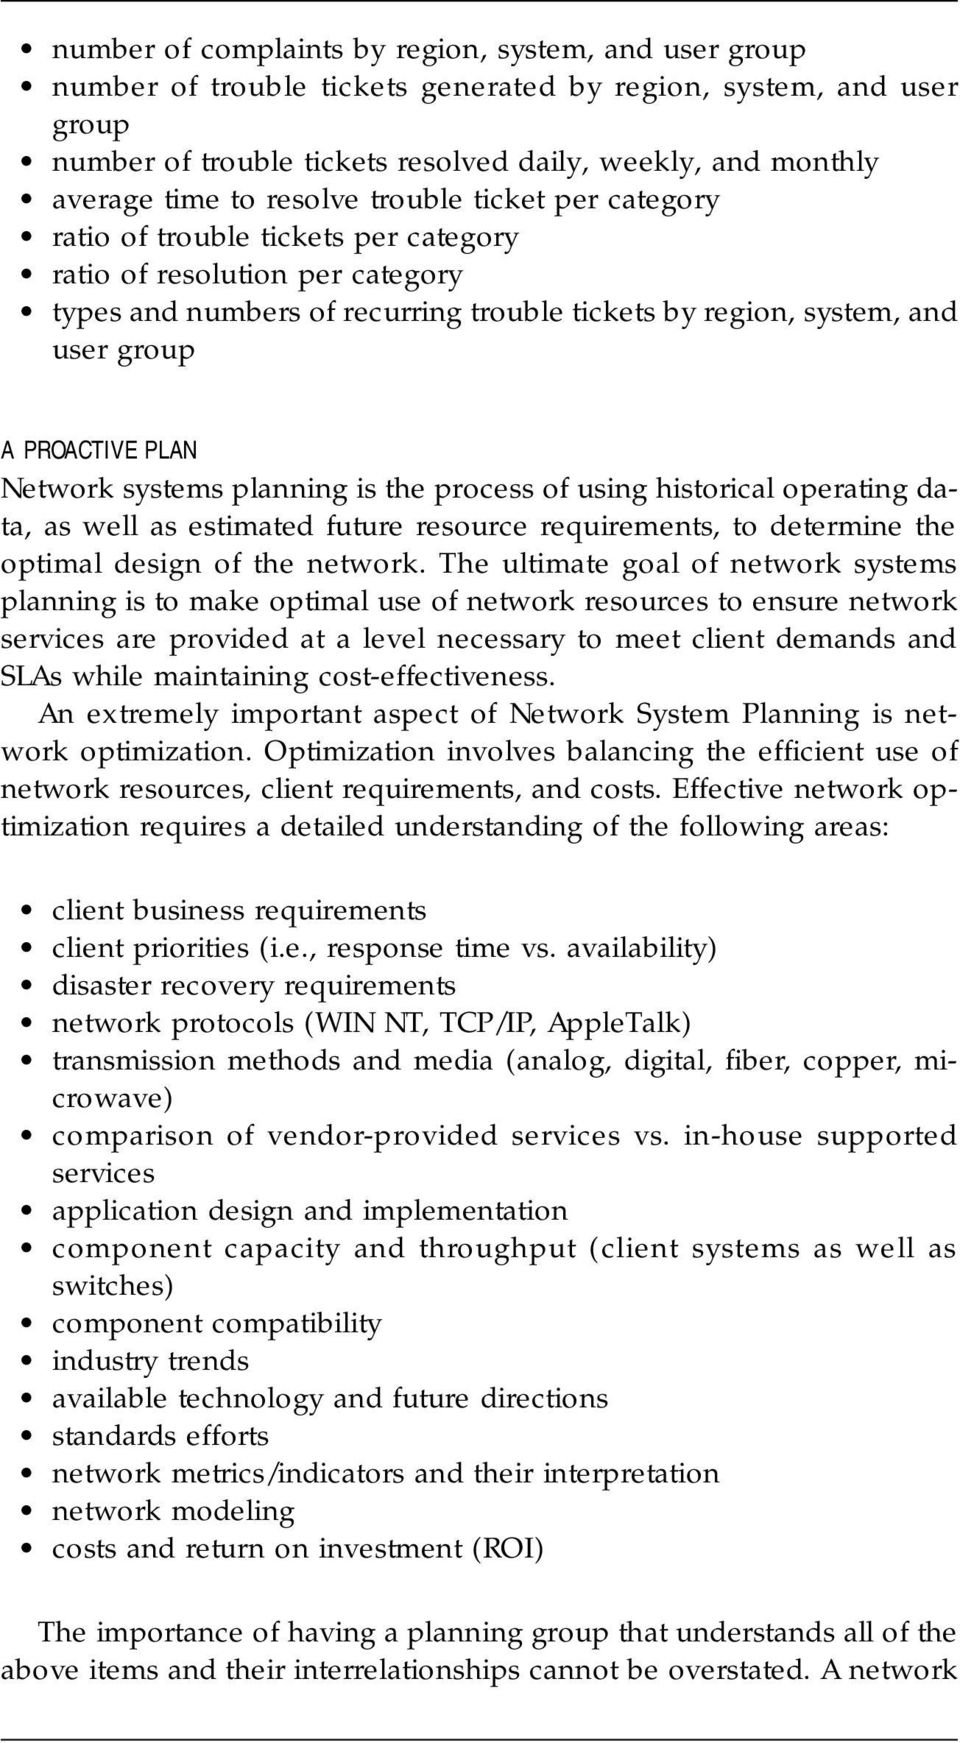 PROACTIVE PLAN Network systems planning is the process of using historical operating data, as well as estimated future resource requirements, to determine the optimal design of the network.